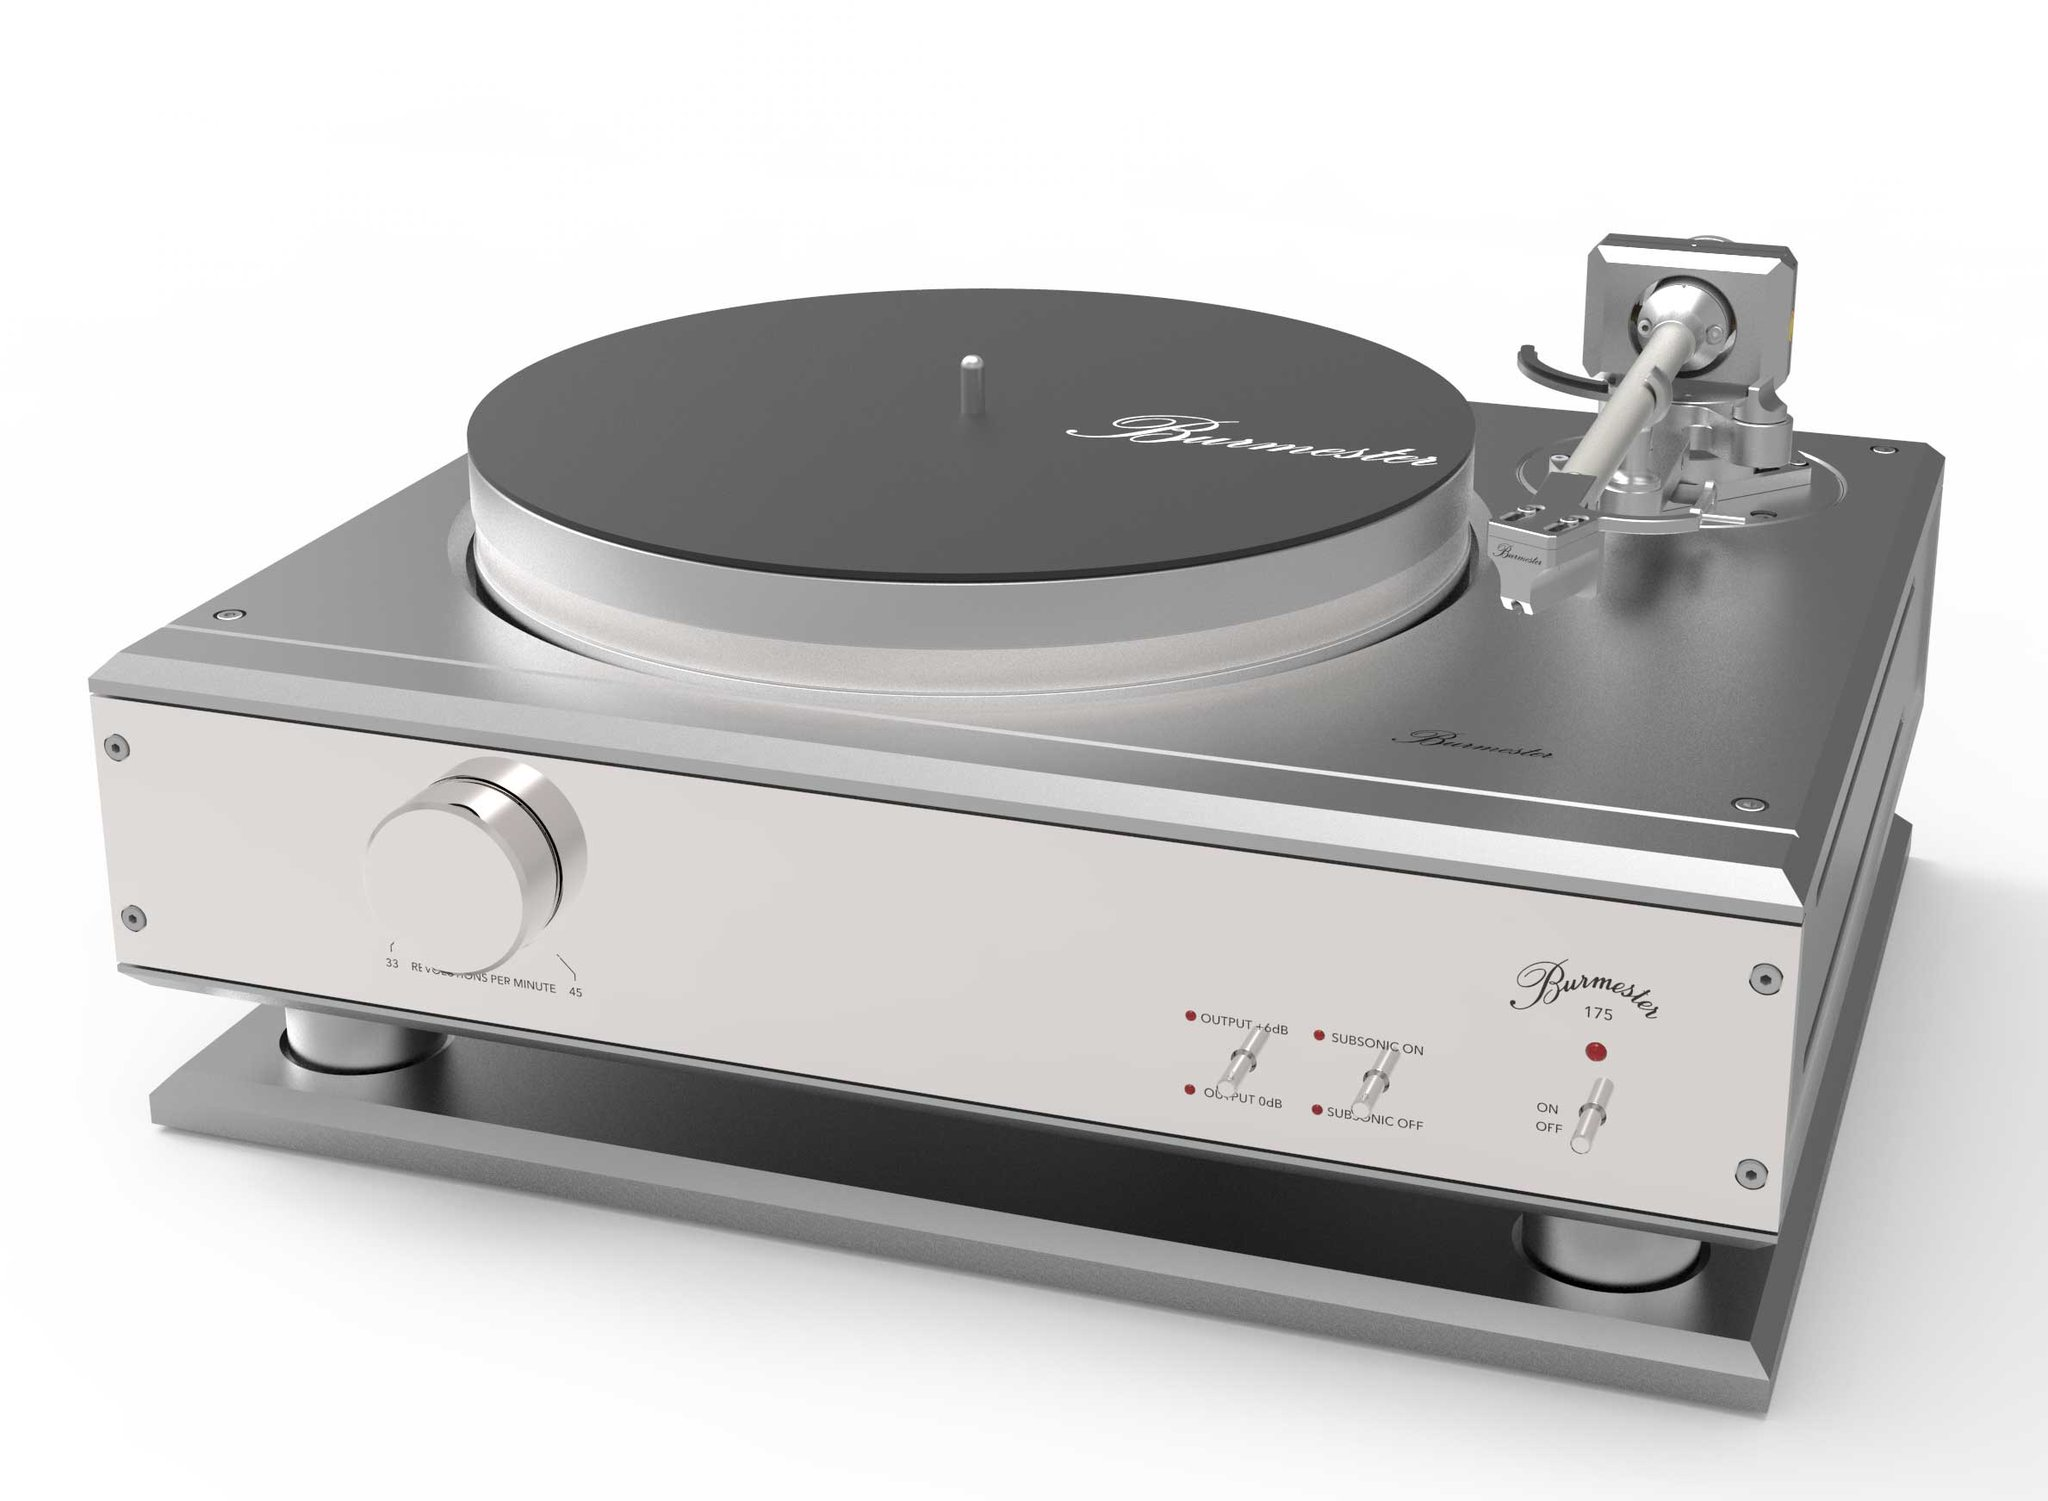 Burmester 175 The Company S First Turntable To Celebrate